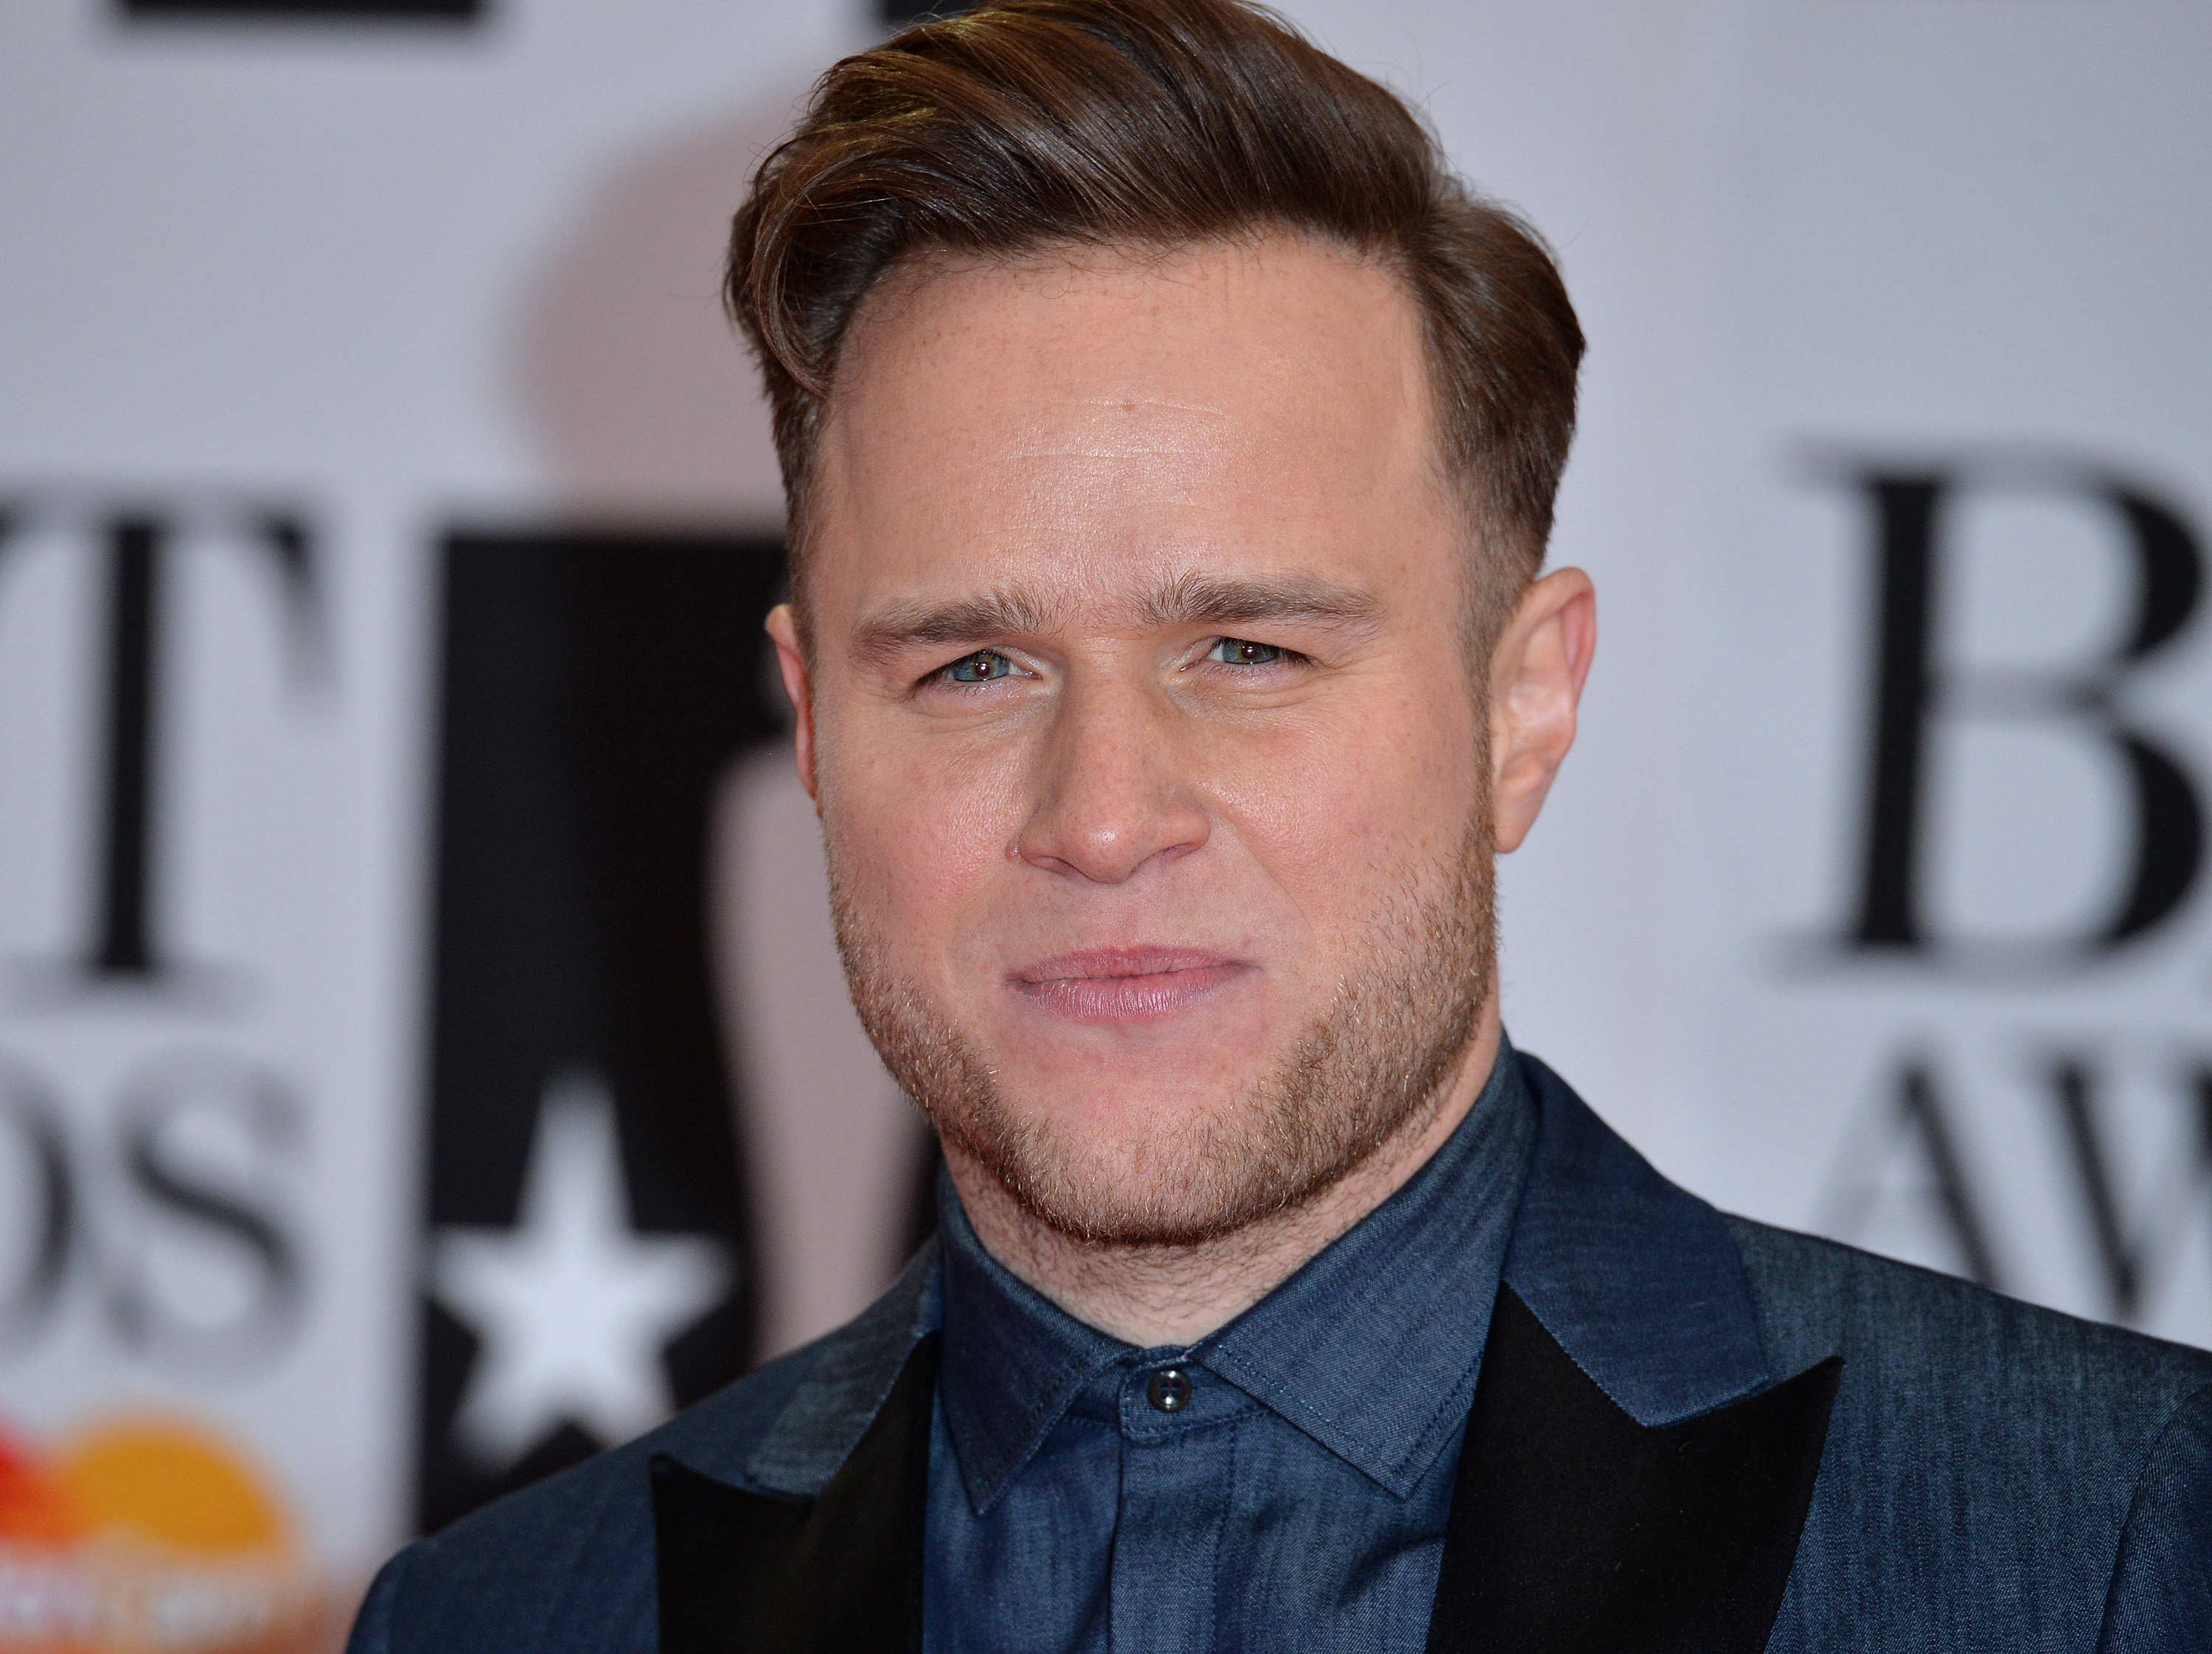 LONDON, ENGLAND - FEBRUARY 24: Olly Murs attends the BRIT Awards 2016 at The O2 Arena on February 24, 2016 in London, England. (Photo by Anthony Harvey/Getty Images)